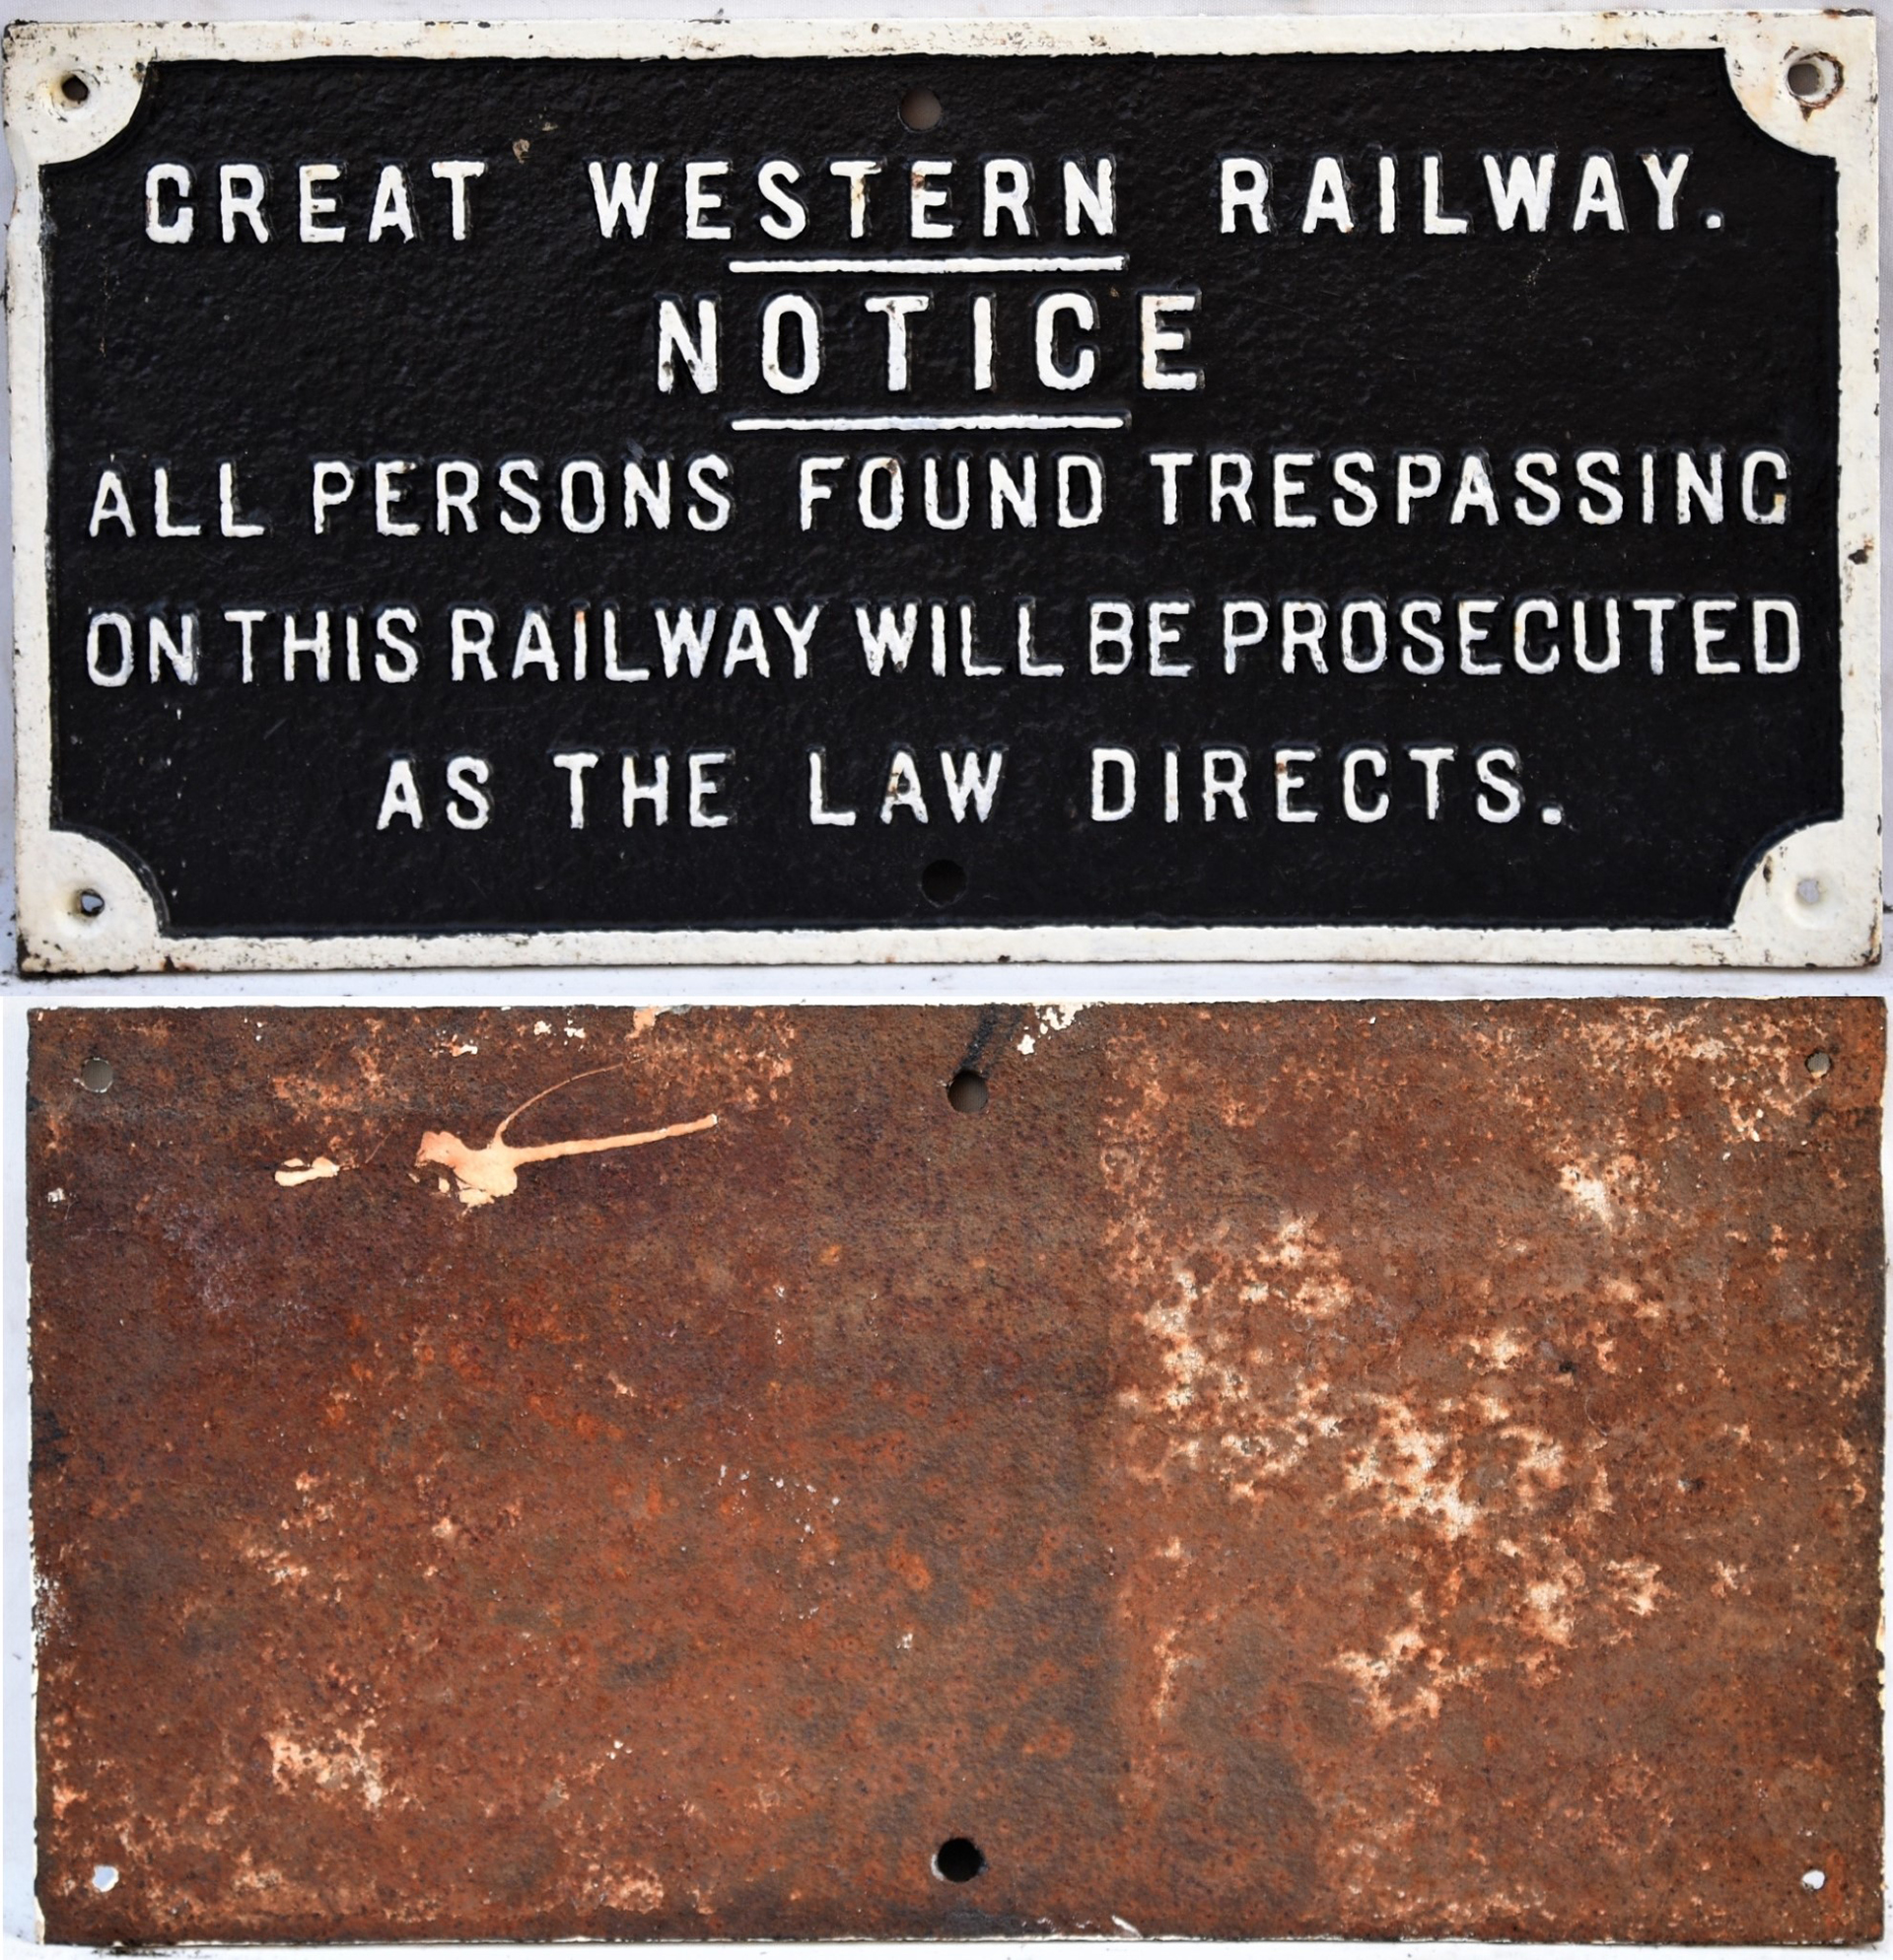 GWR cast iron notice. ALL PERSONS FOUND TRESPASSING. Front repainted measuring 23.5in x 12 in.